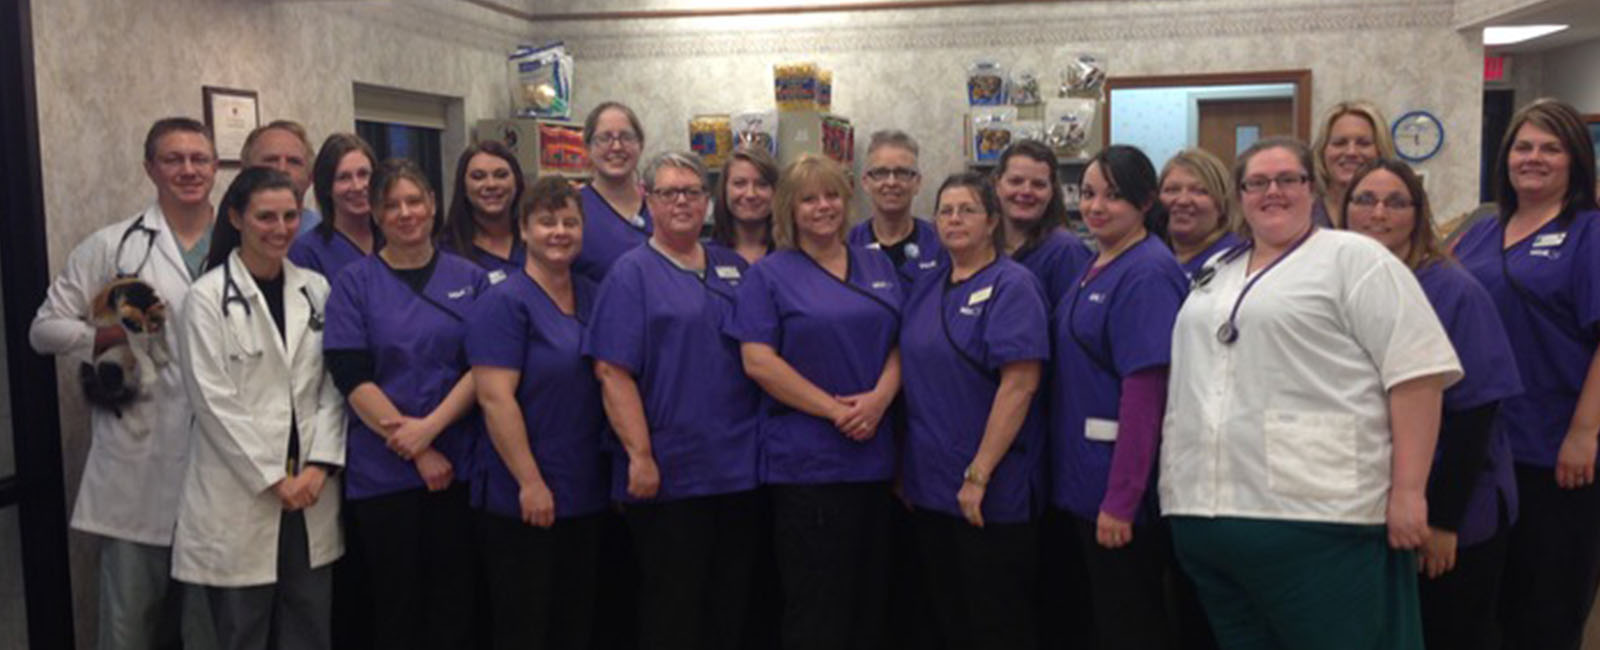 Homepage Team Picture of VCA Northwood Animal Hospital